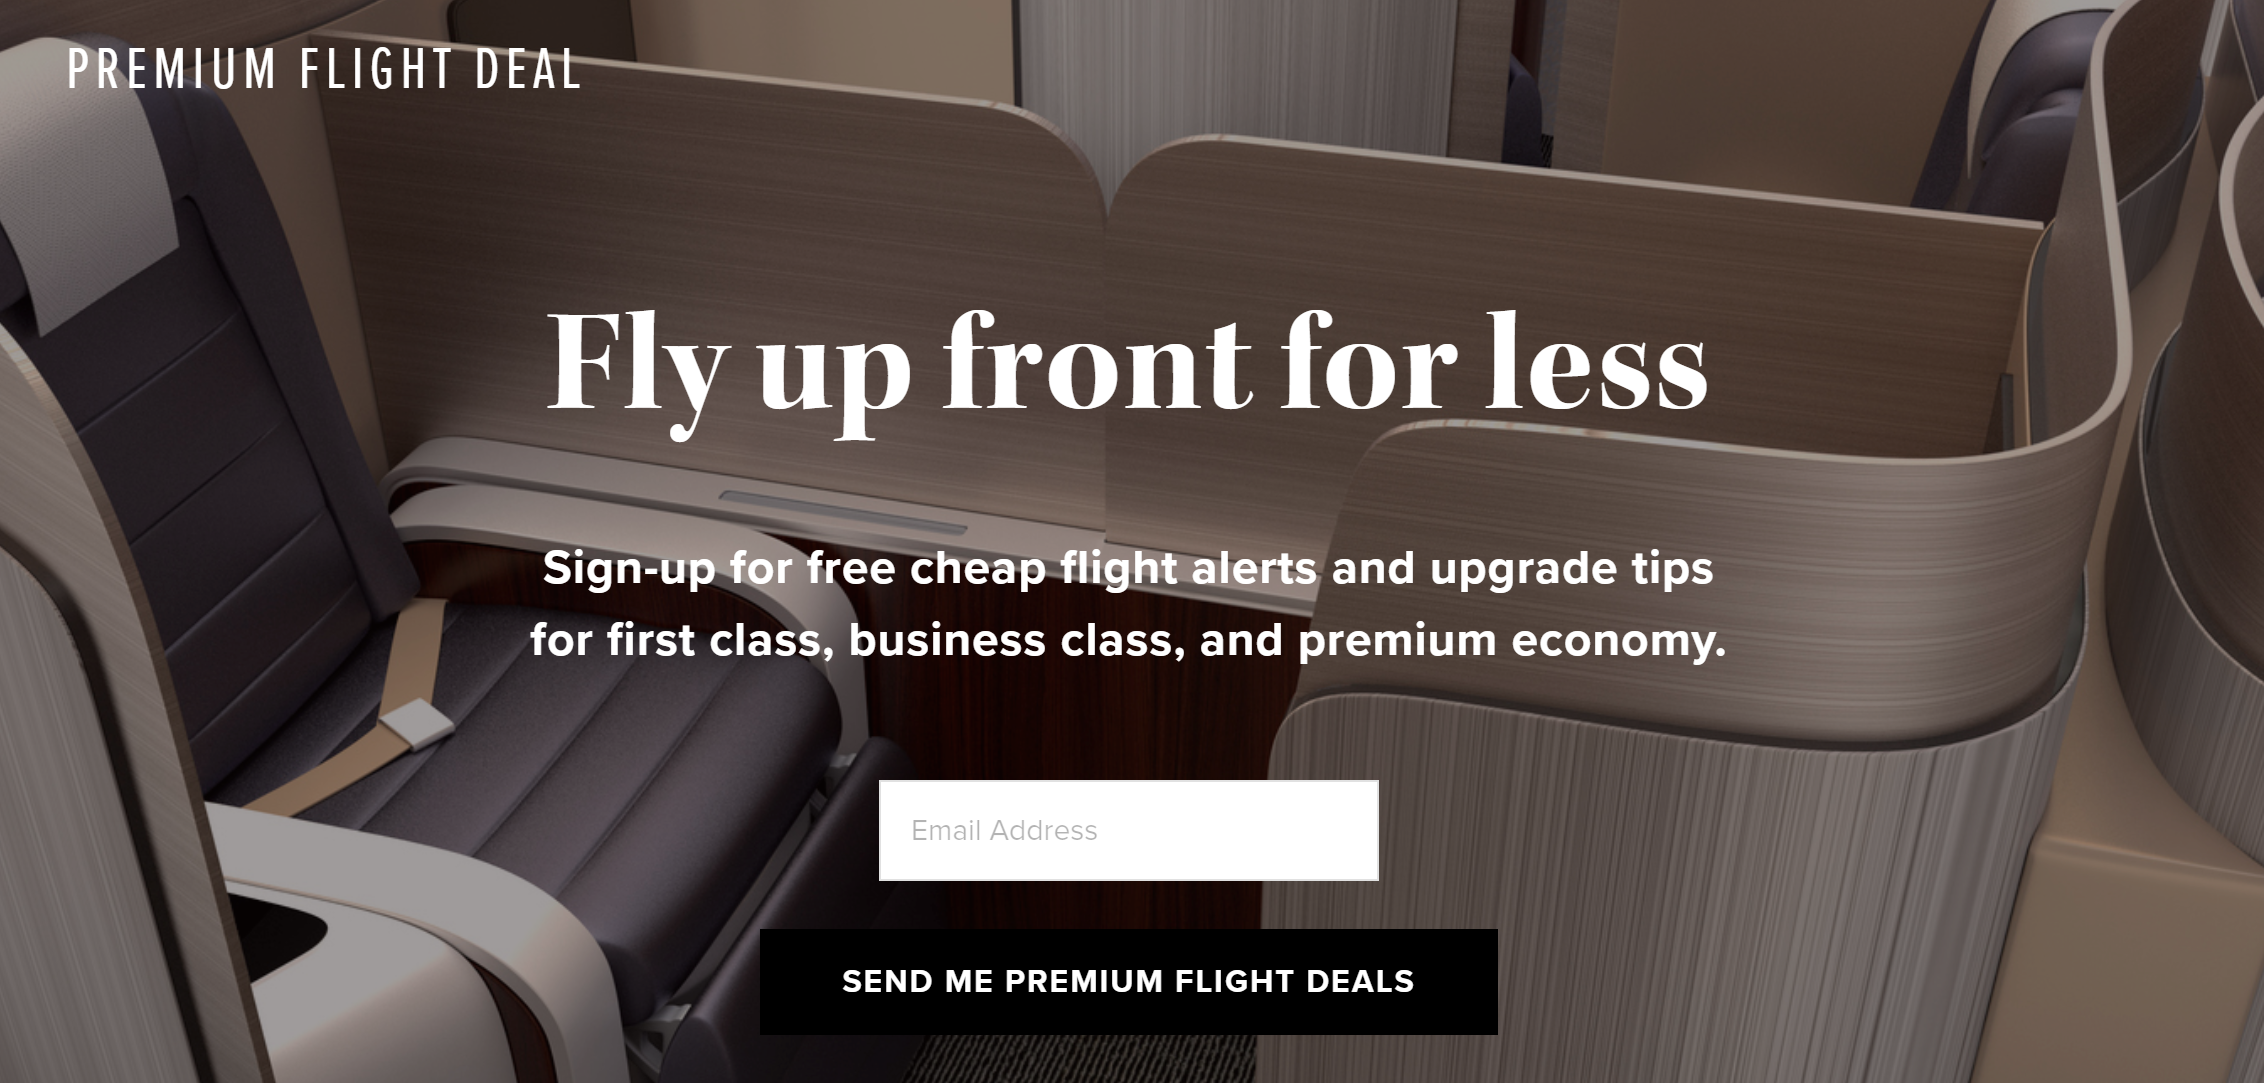 Introducing PremiumFlightDeal.com